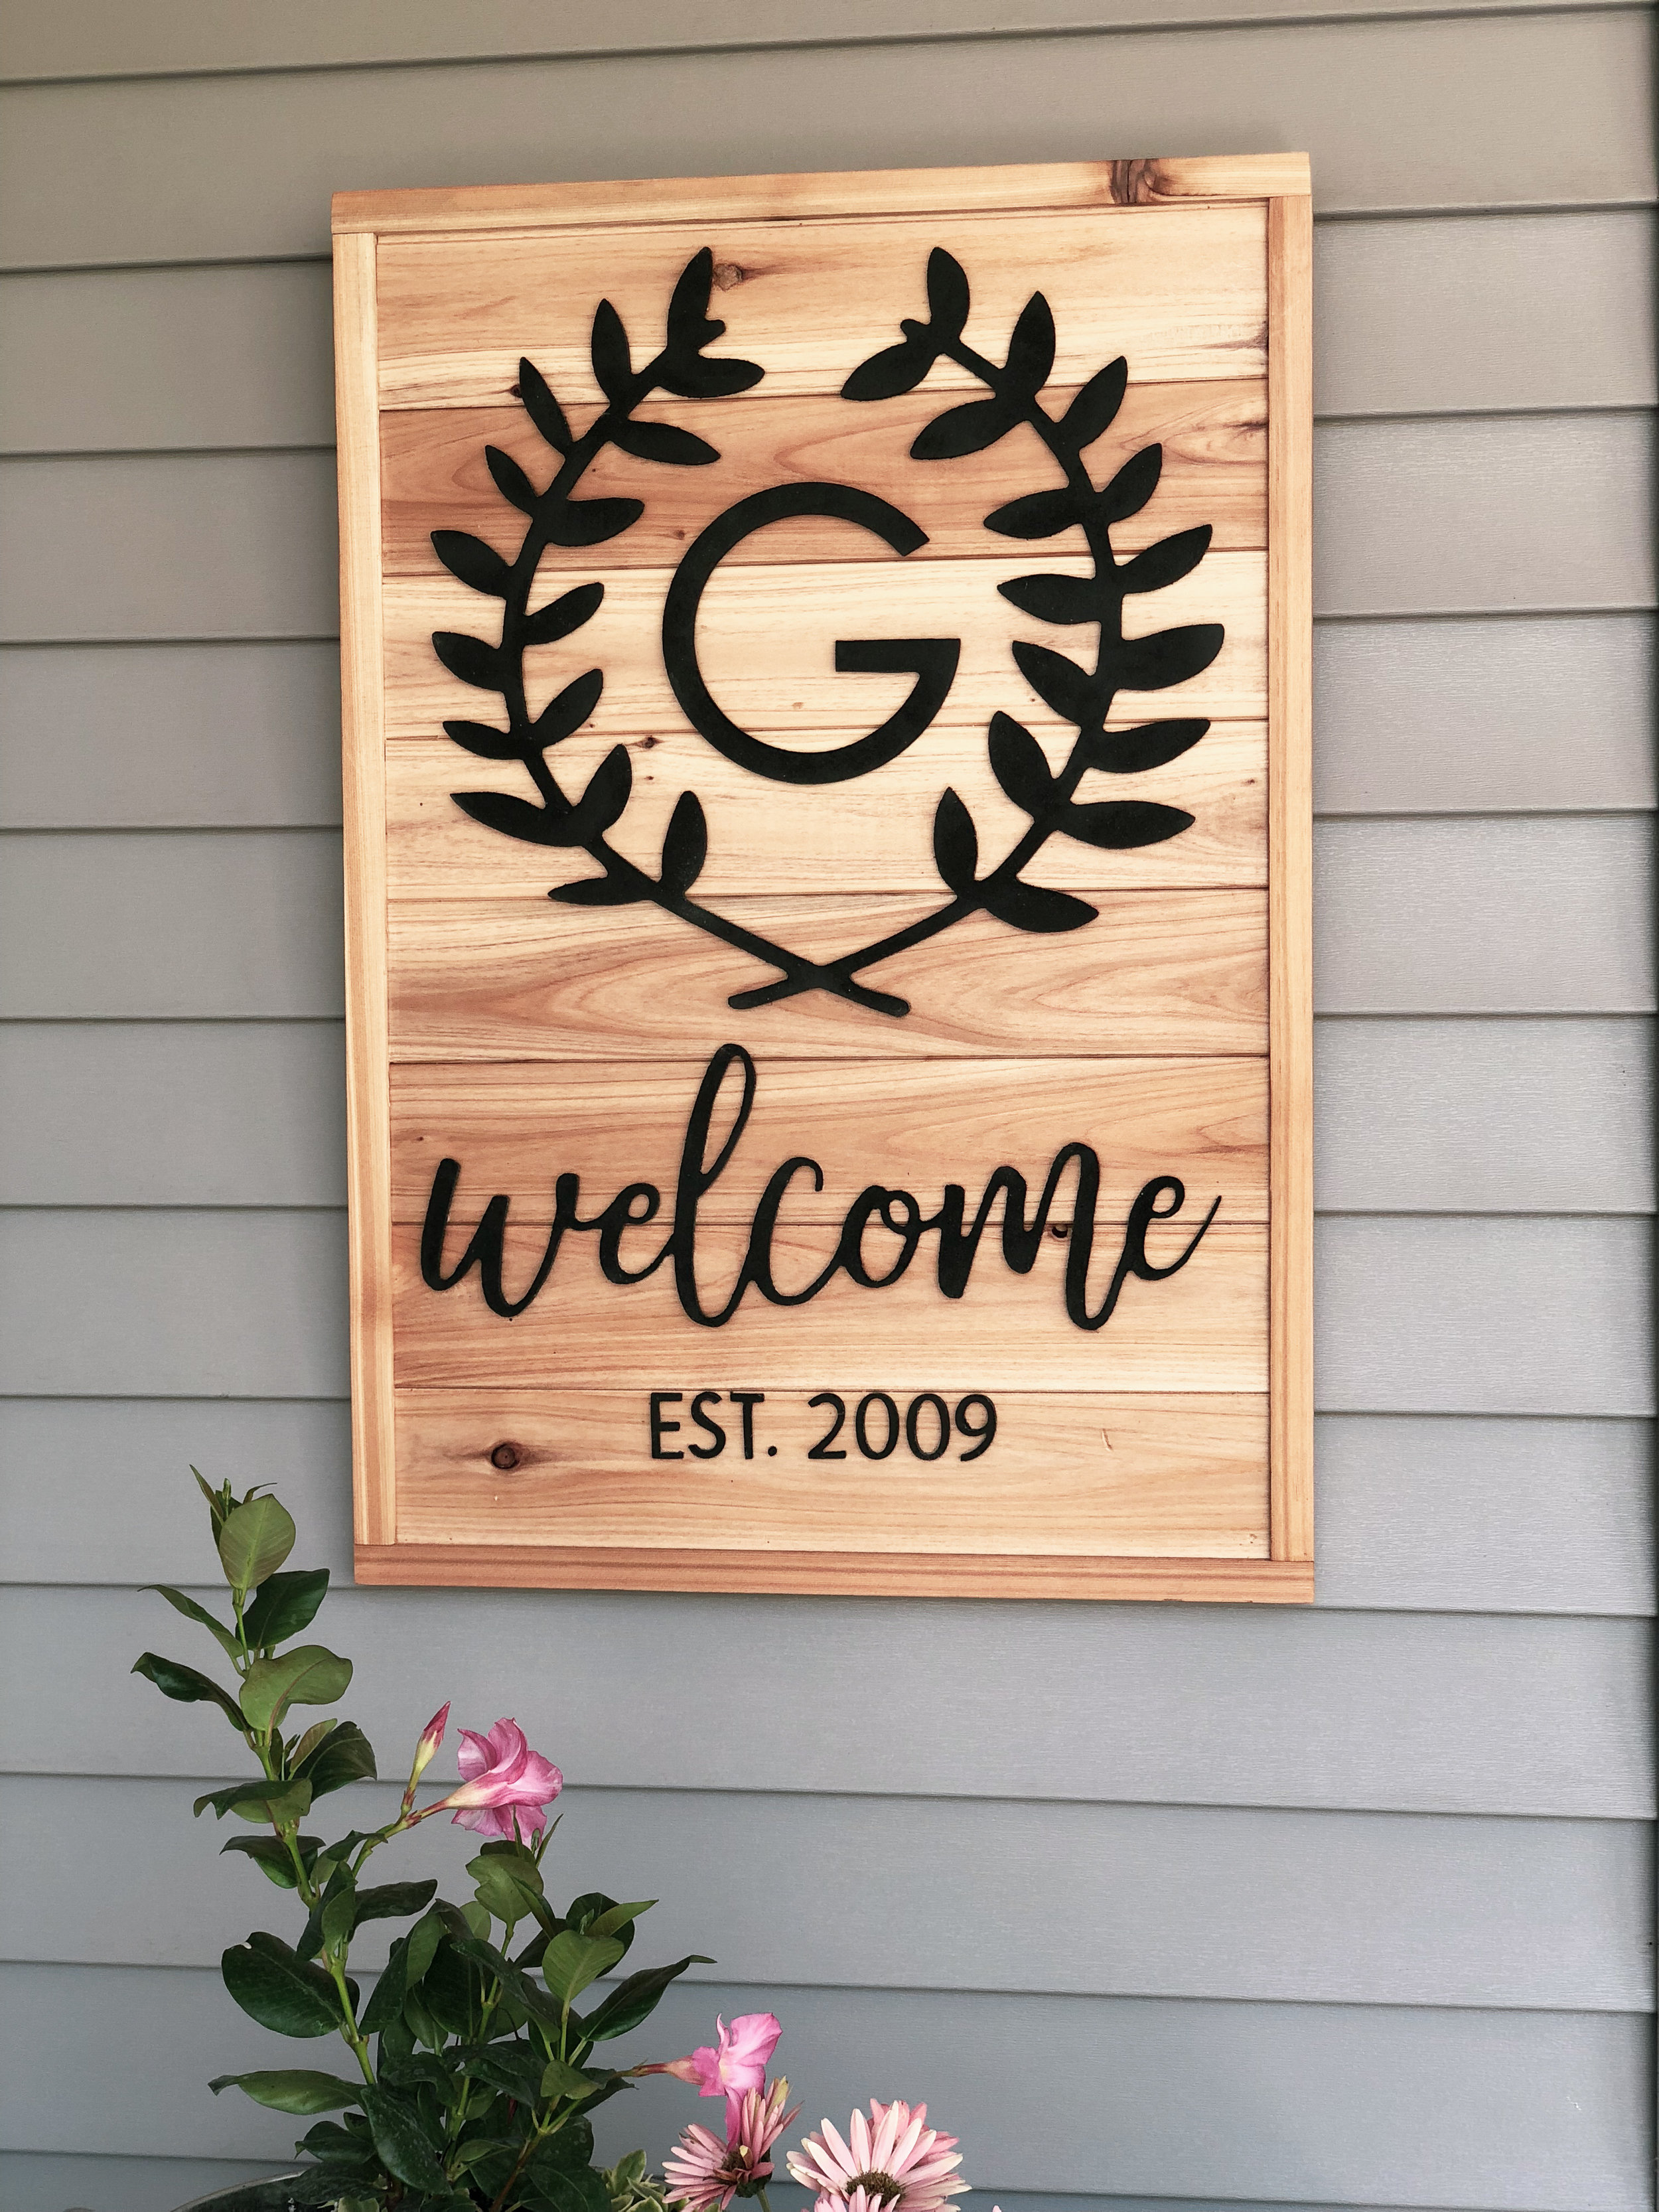 I'm totally in love with this welcome sign! We added this design to our Etsy shop, so if you are looking to add some interest to your porch walls I highly recommend this sign!